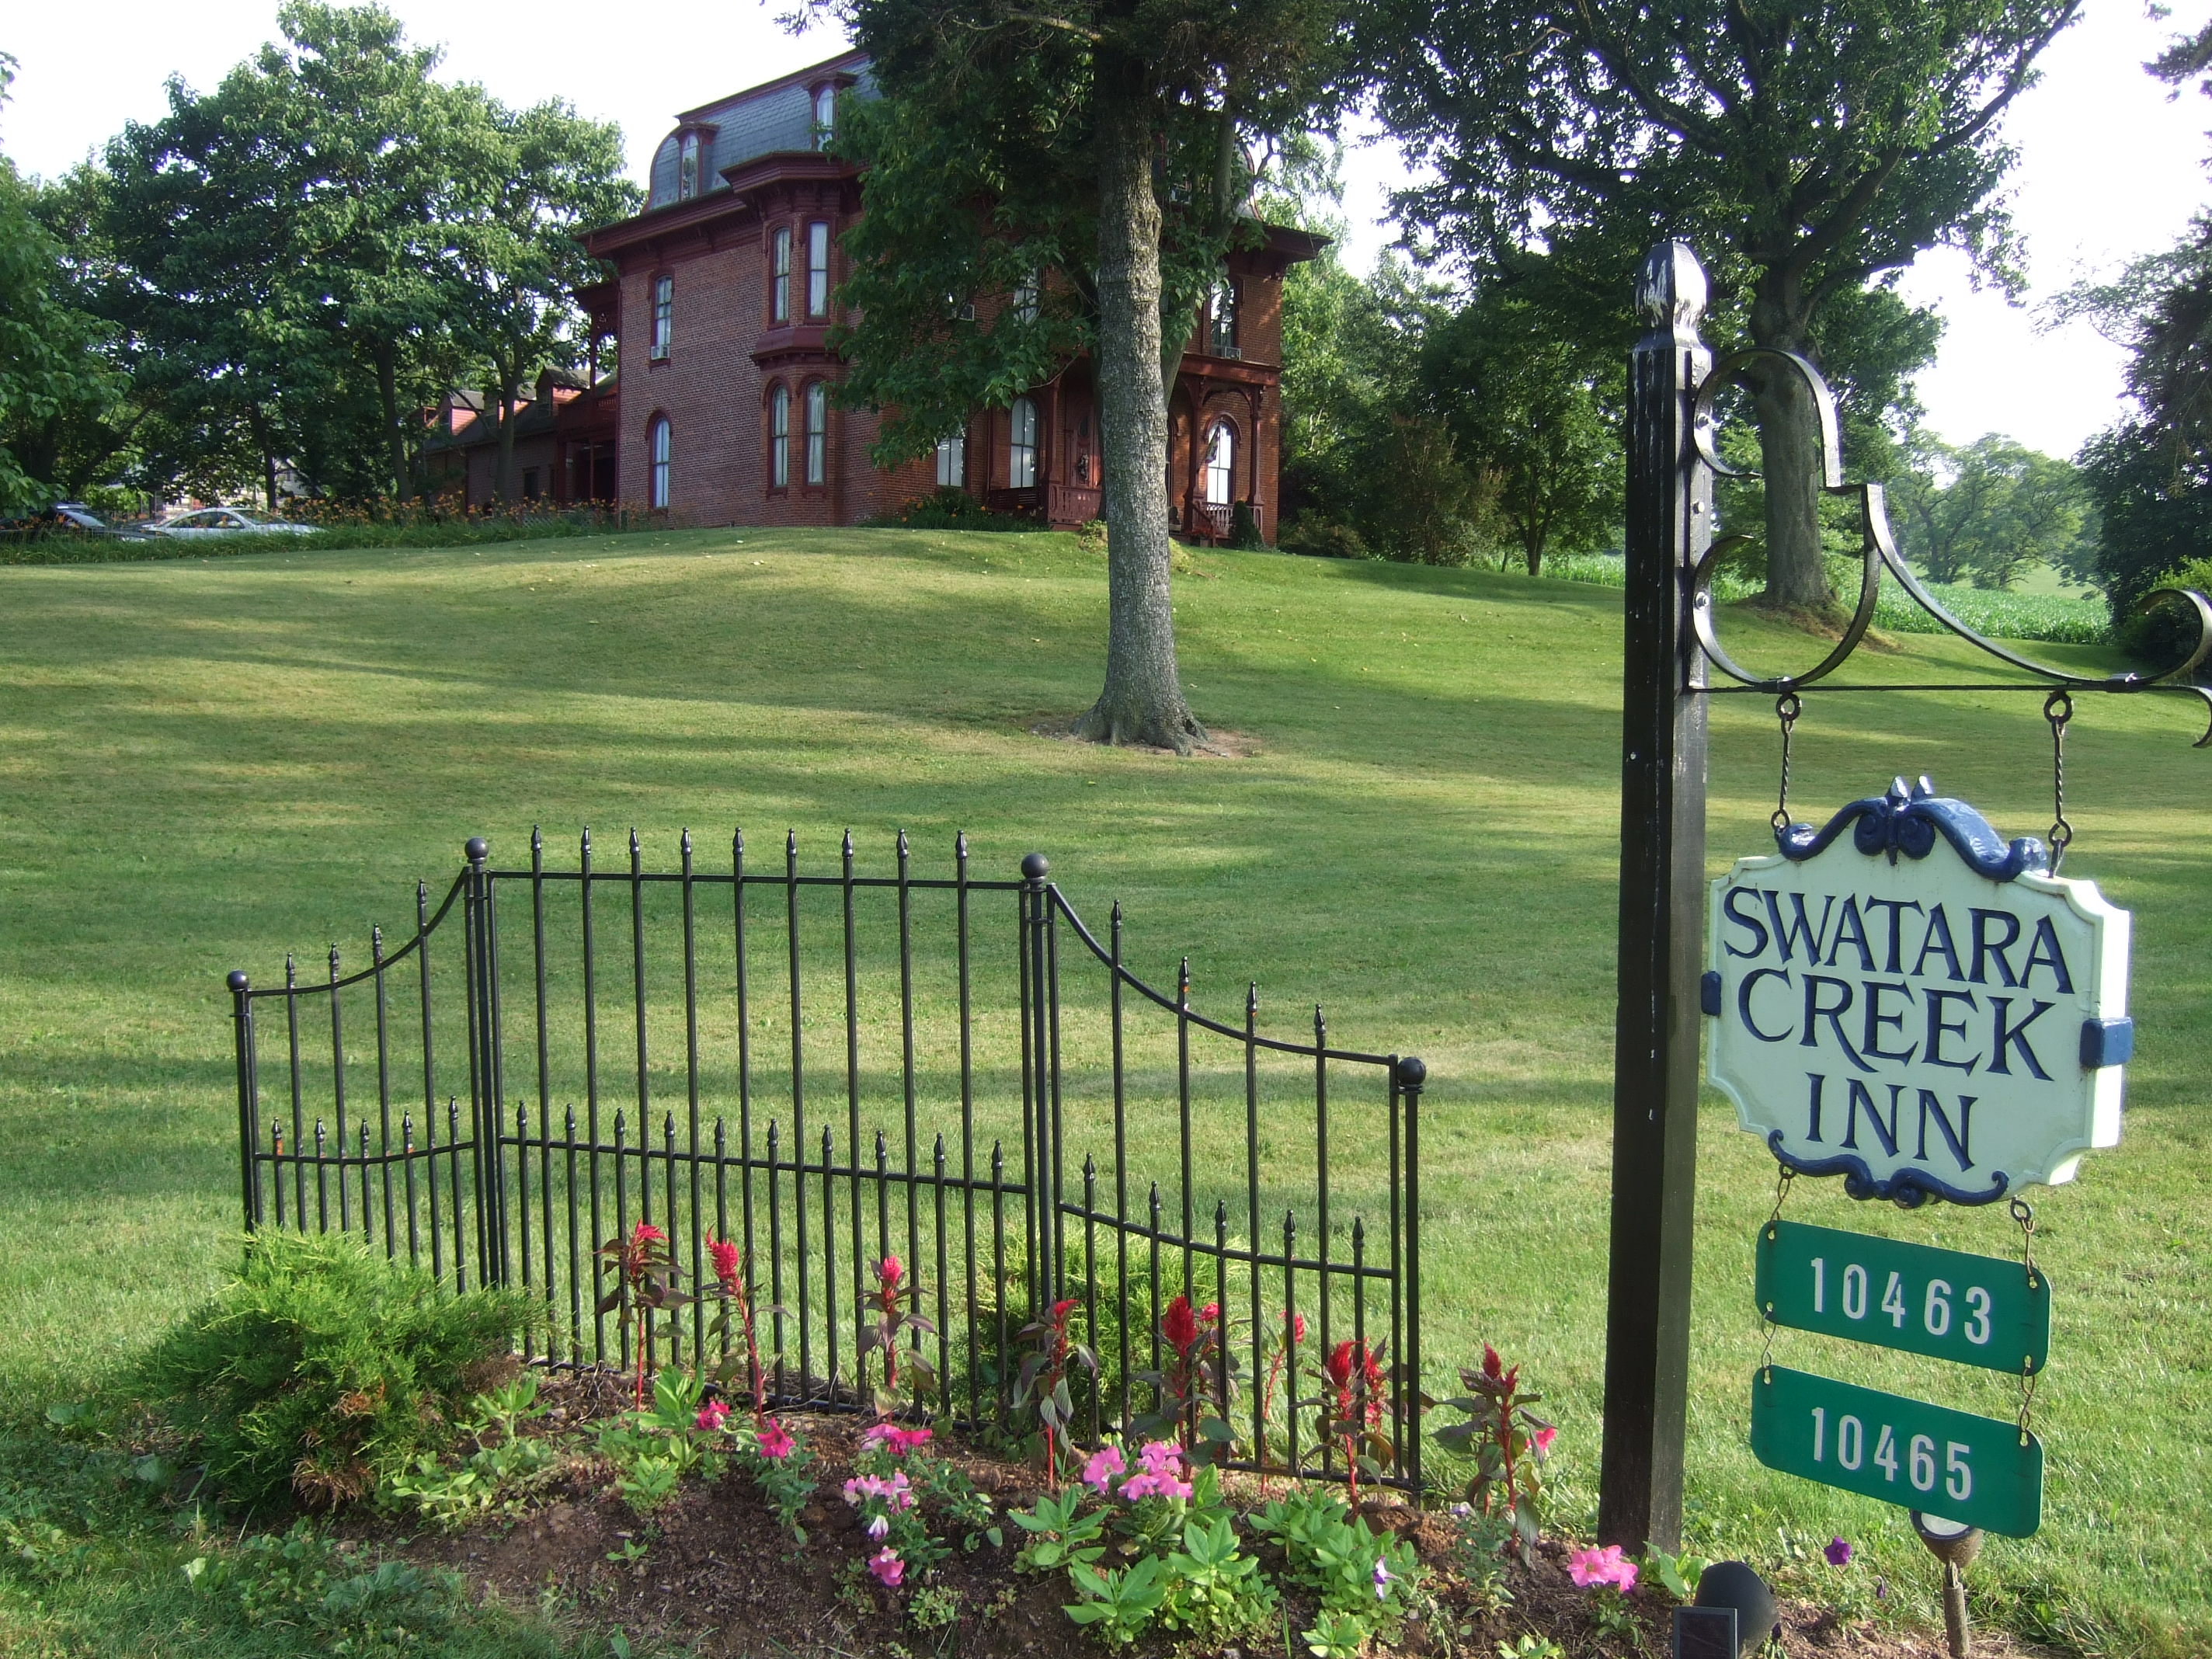 ‪Swatara Creek Inn Bed and Breakfast‬